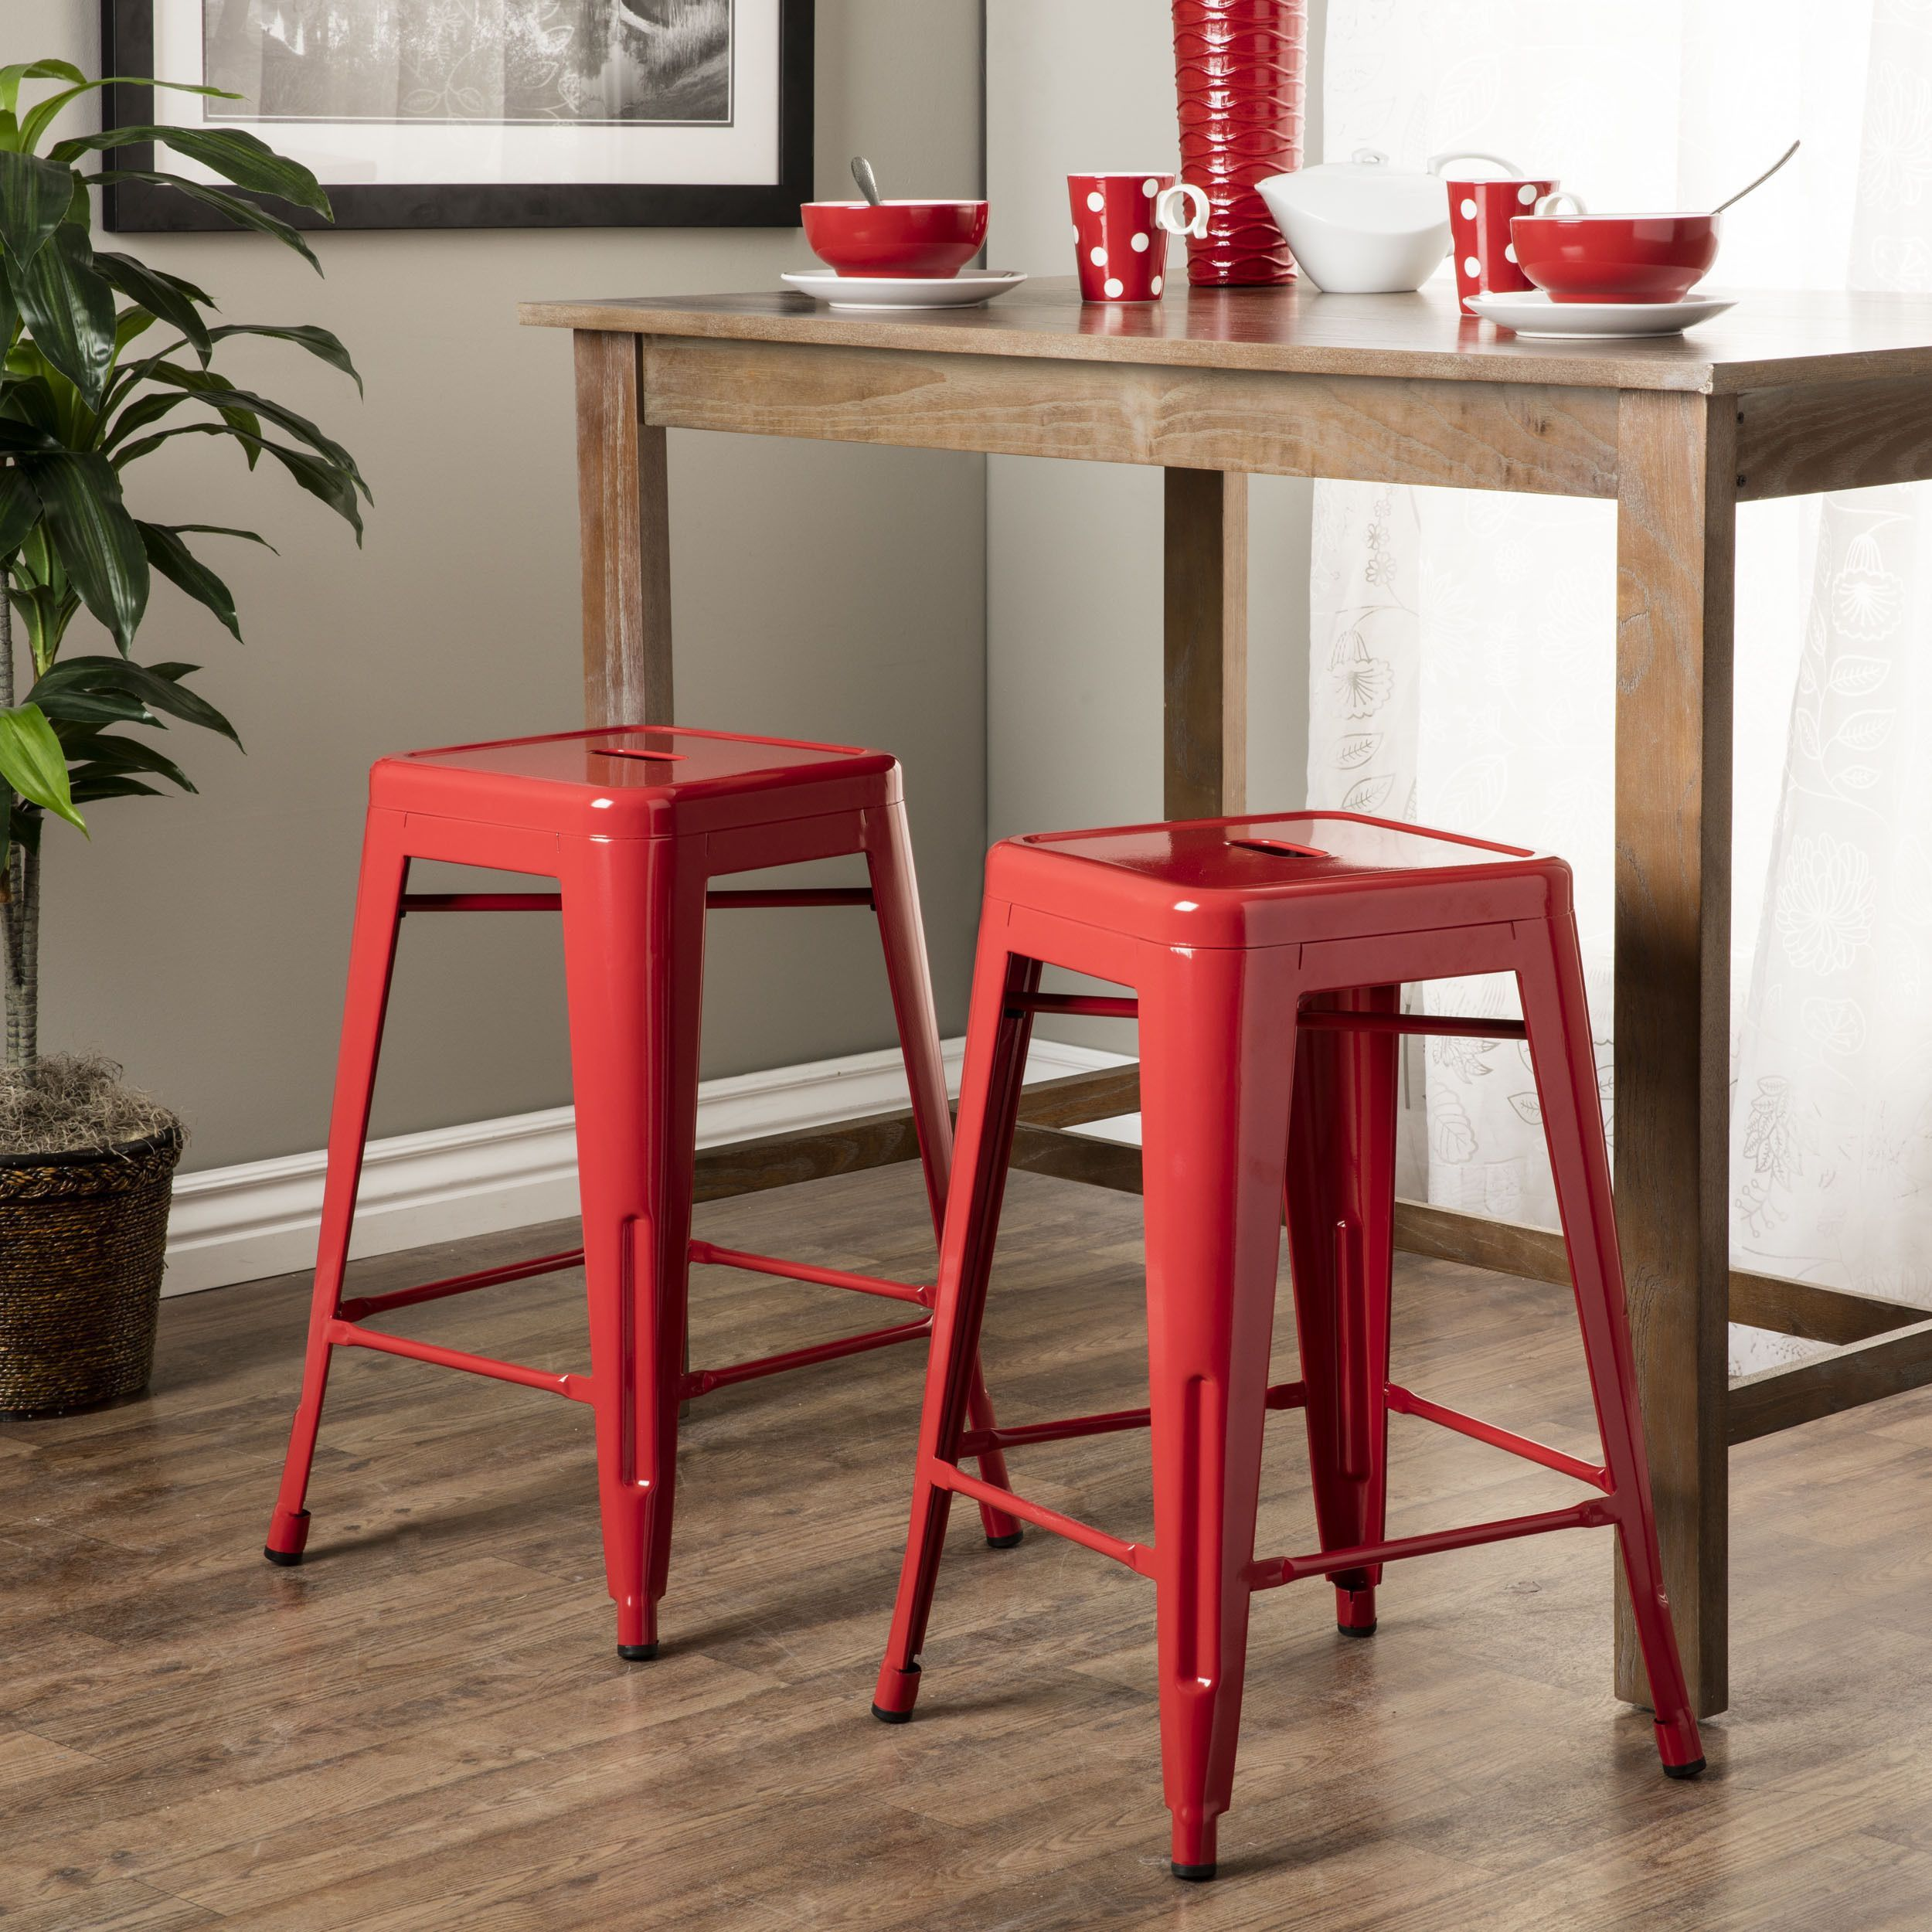 Tabouret 24 Inch Red Metal Counter Stools Set Of 2